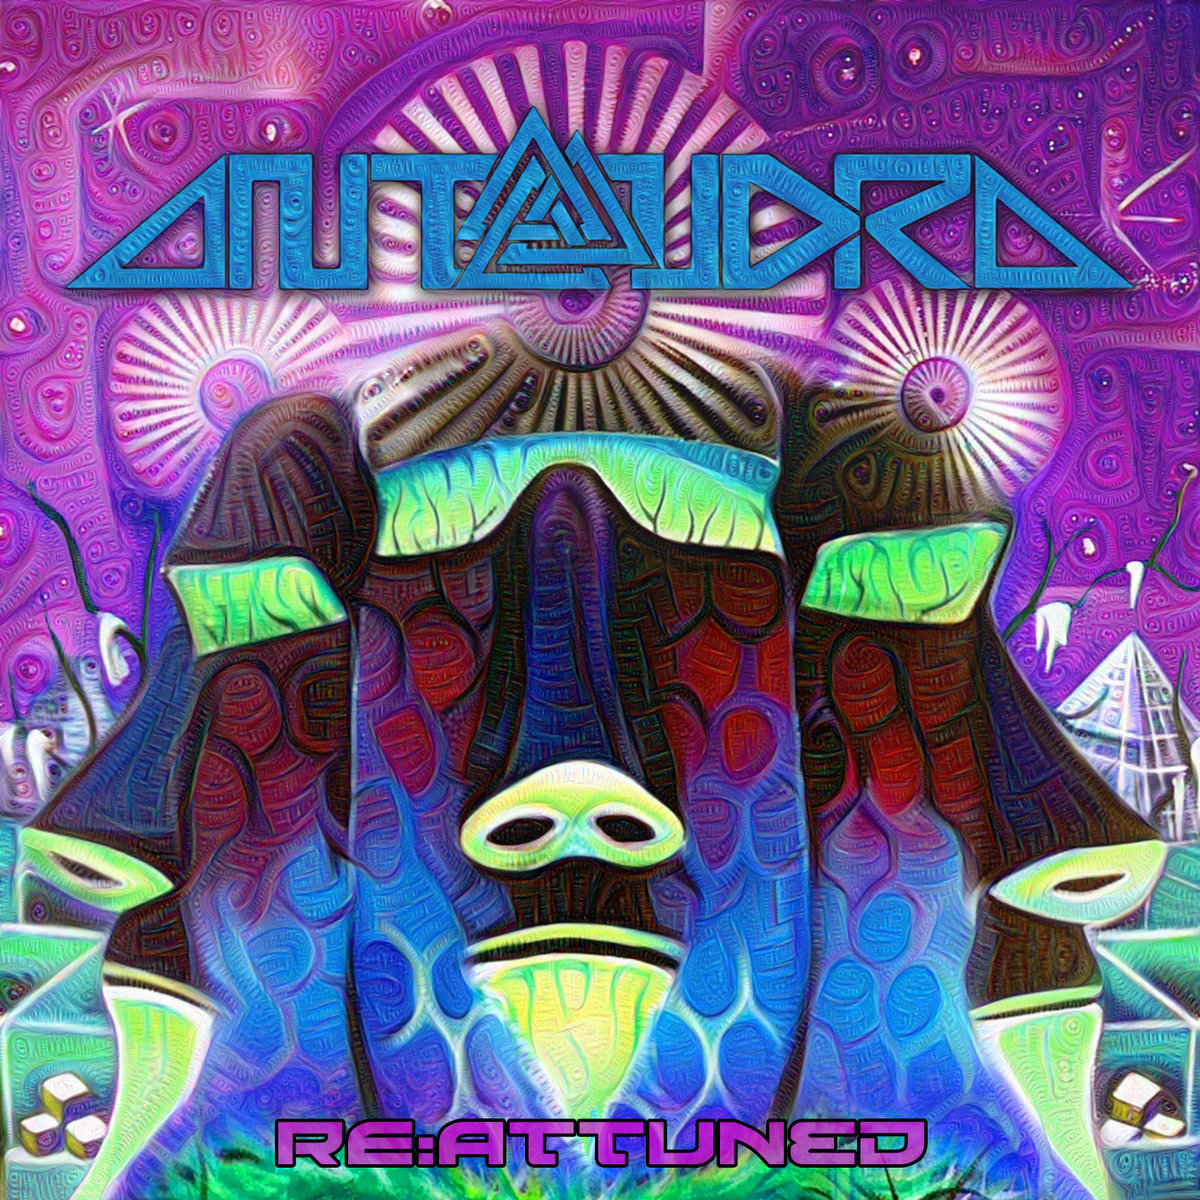 Antandra - You Are the Reason (Icaro Remix) @ 'RE:ATTUNED' album (ambient, downtempo)